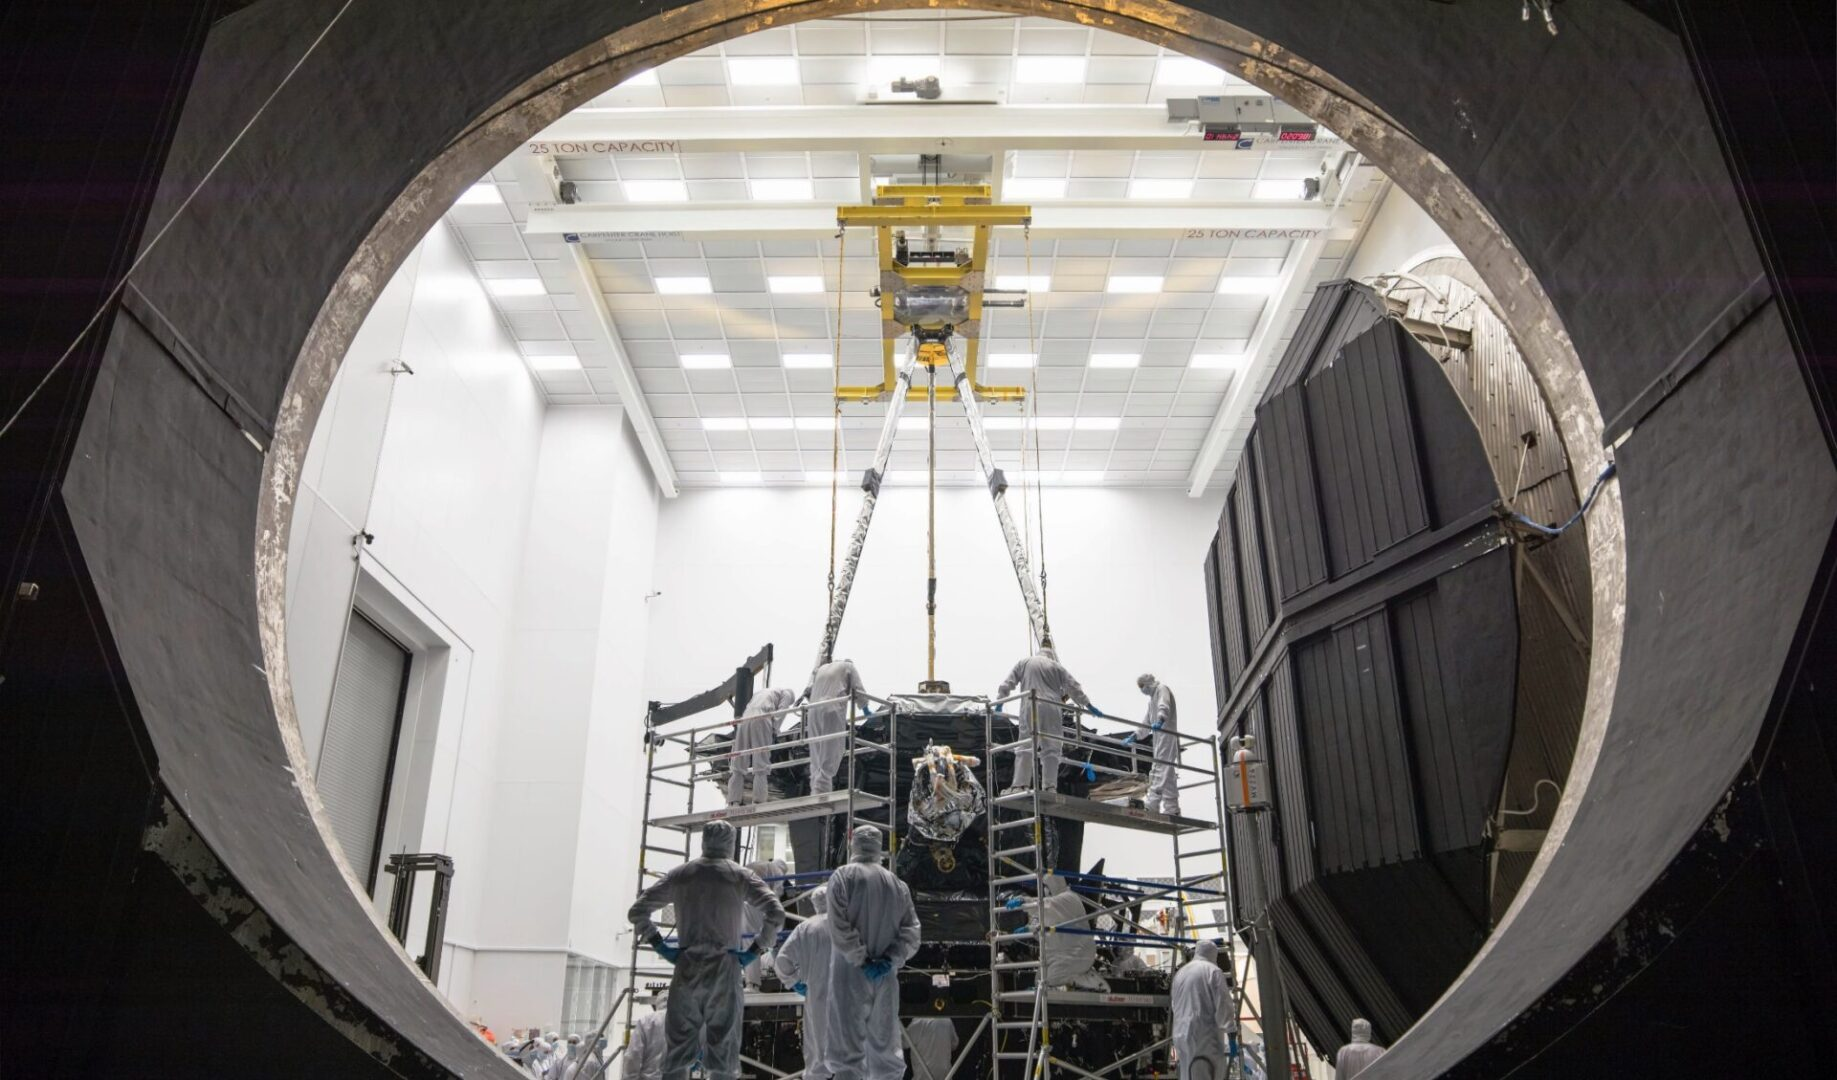 25 -Ton cleanroom crane at Johnson Space Center For NASA's James Webb Telescope project